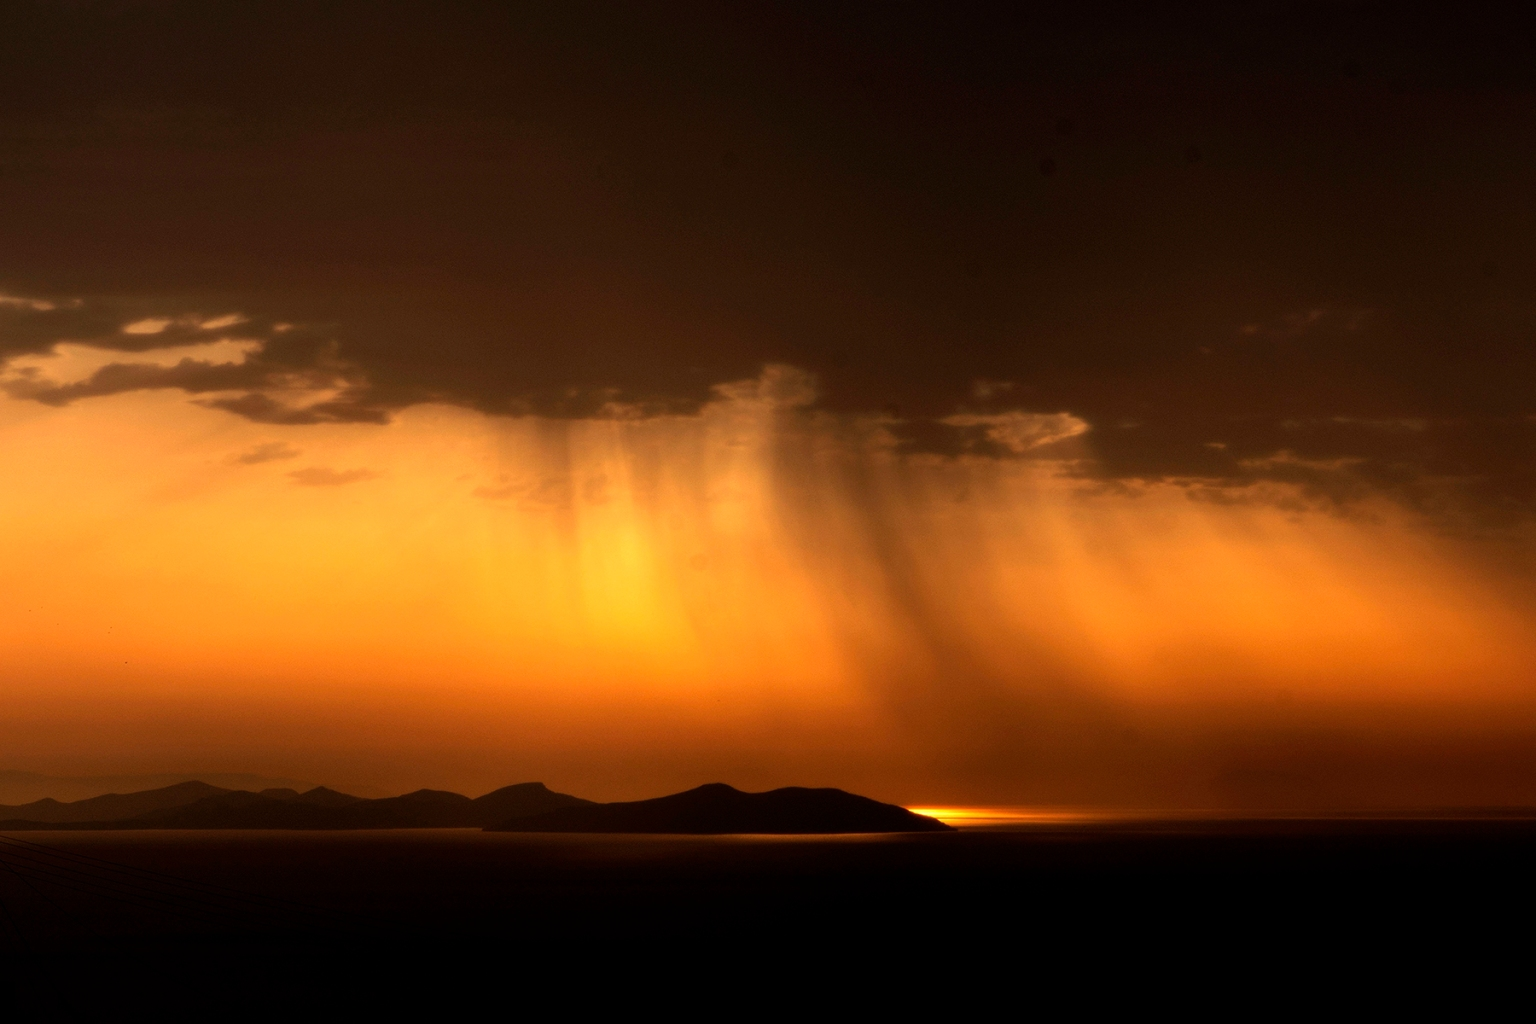 The sun rises behind a bank of clouds on the Greek island of Sifnos on Oct. 4. LOUISA GOULIAMAKI/AFP/Getty Images